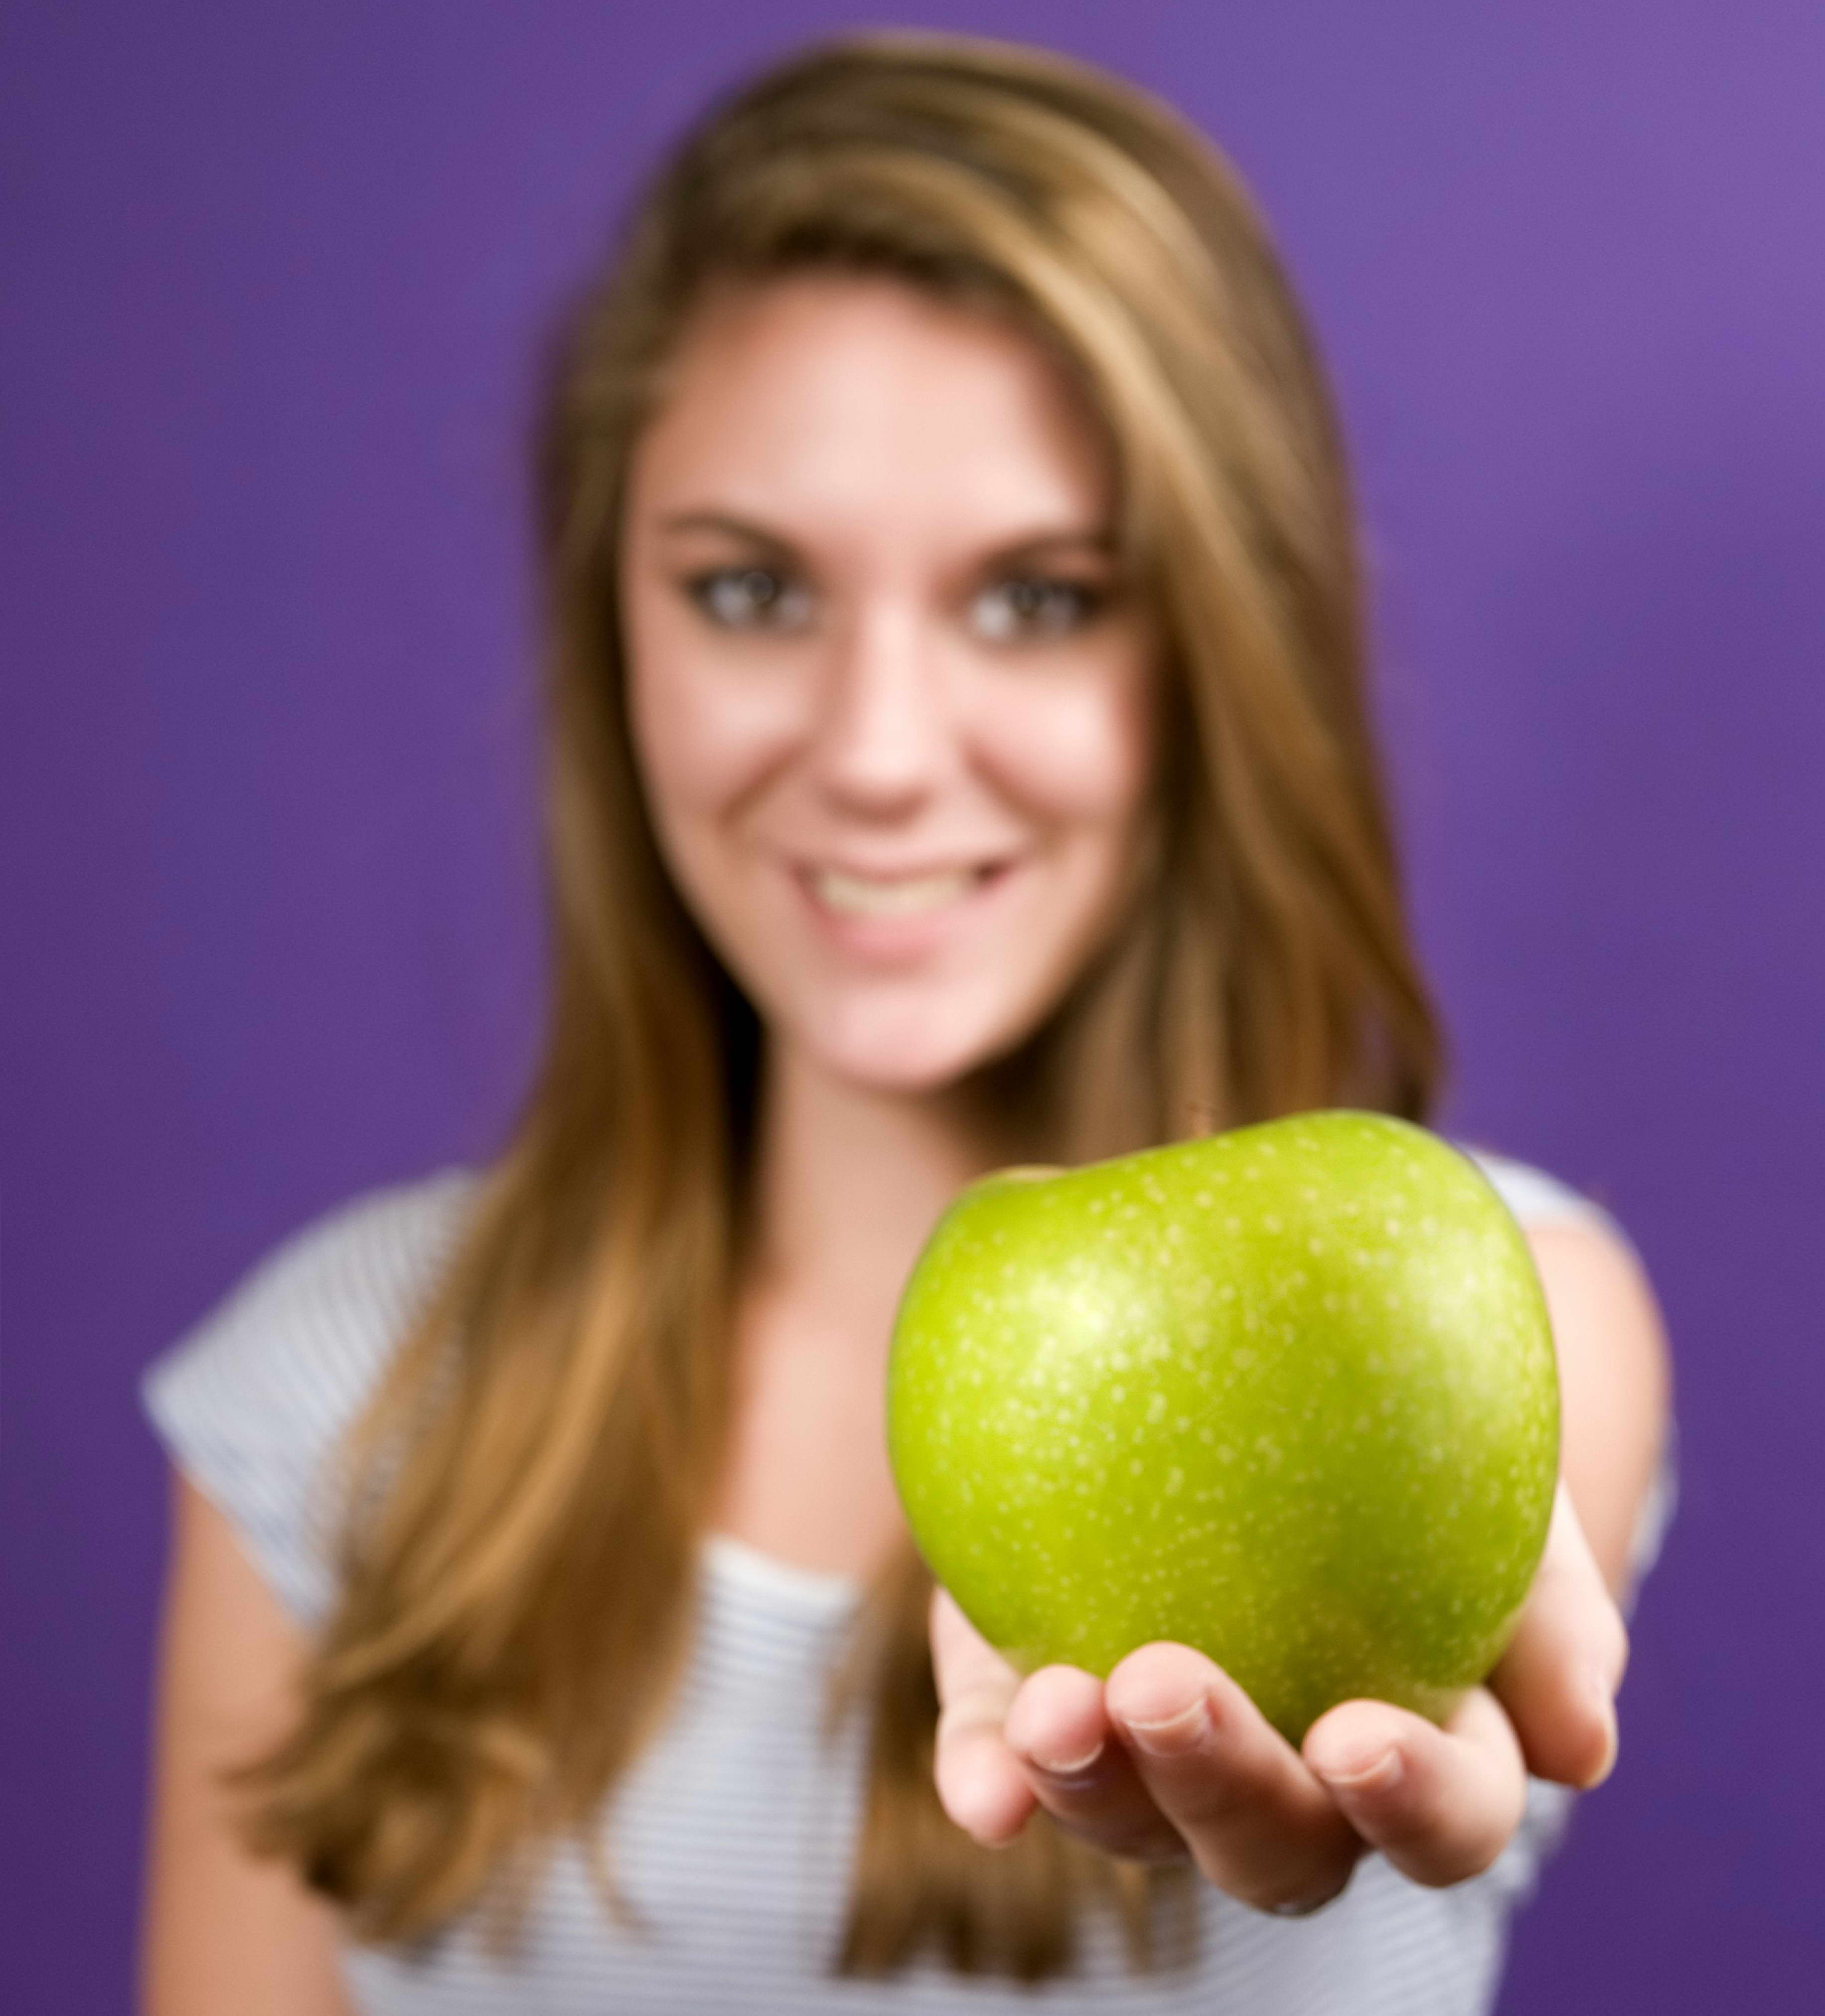 Free photograph; young, woman, extending, right, arm, holds, green, granny, smith, apple